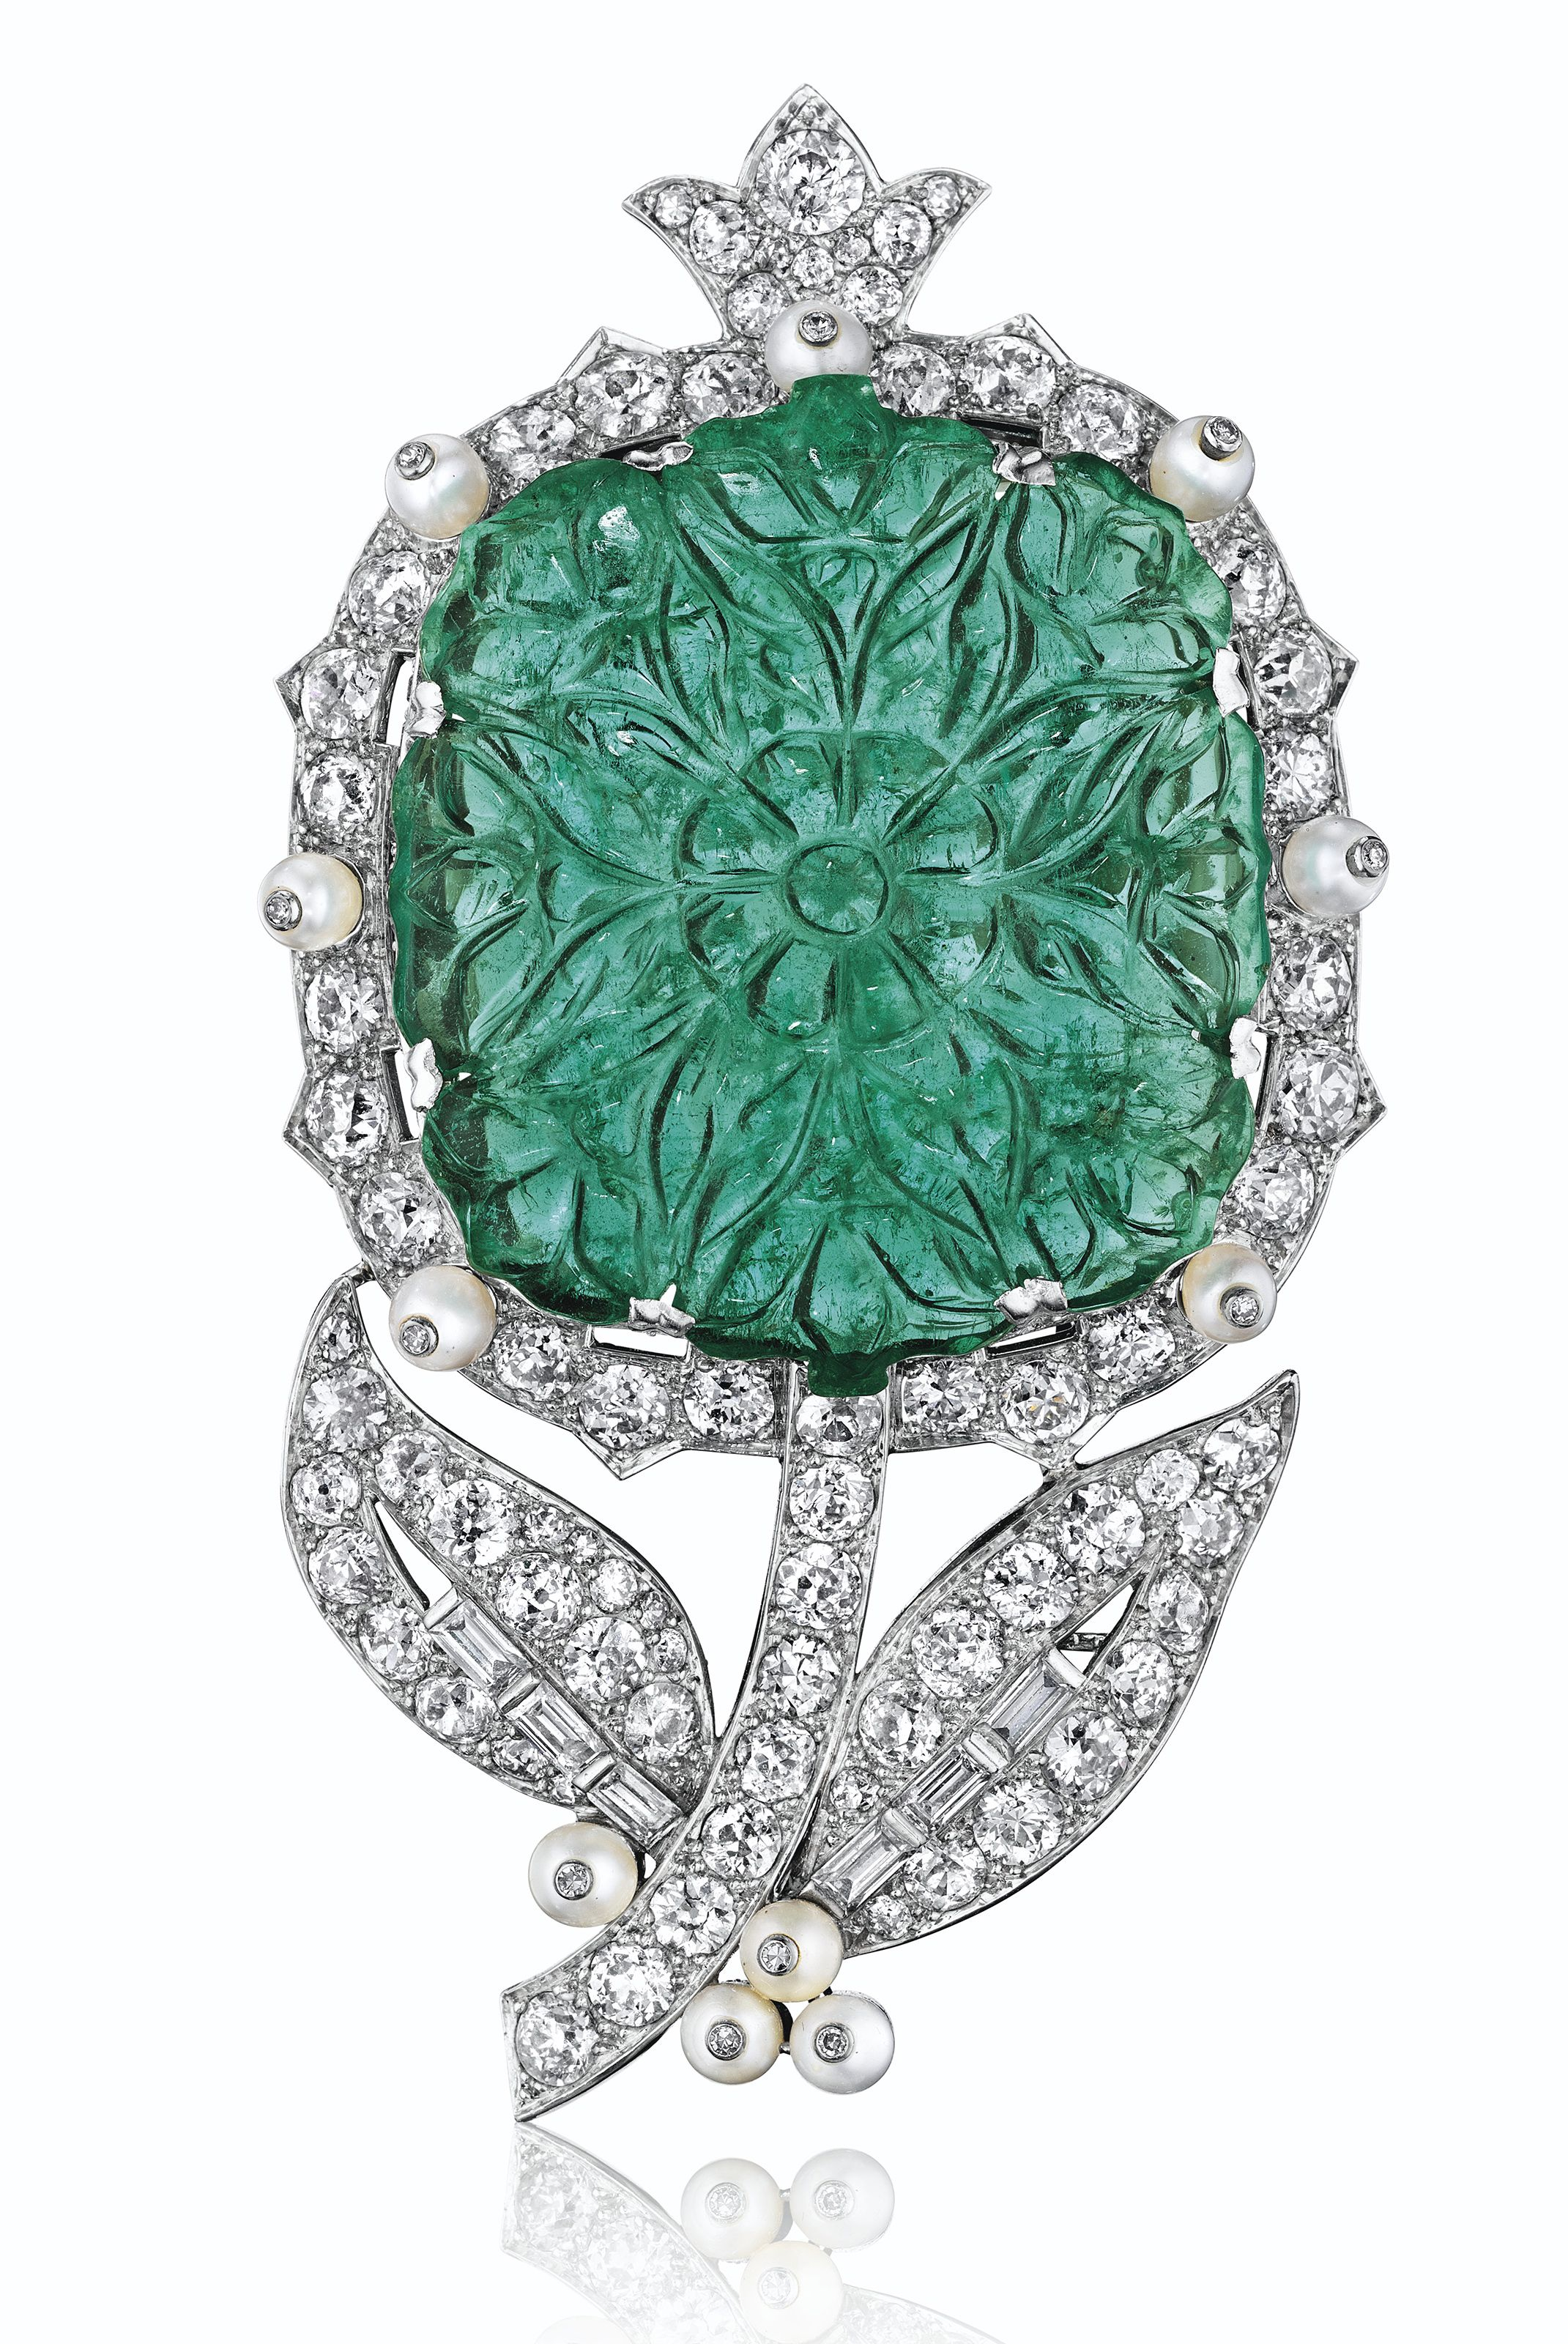 carat cartier tag standard sothebys york emerald was at gem million the top lot ring that new